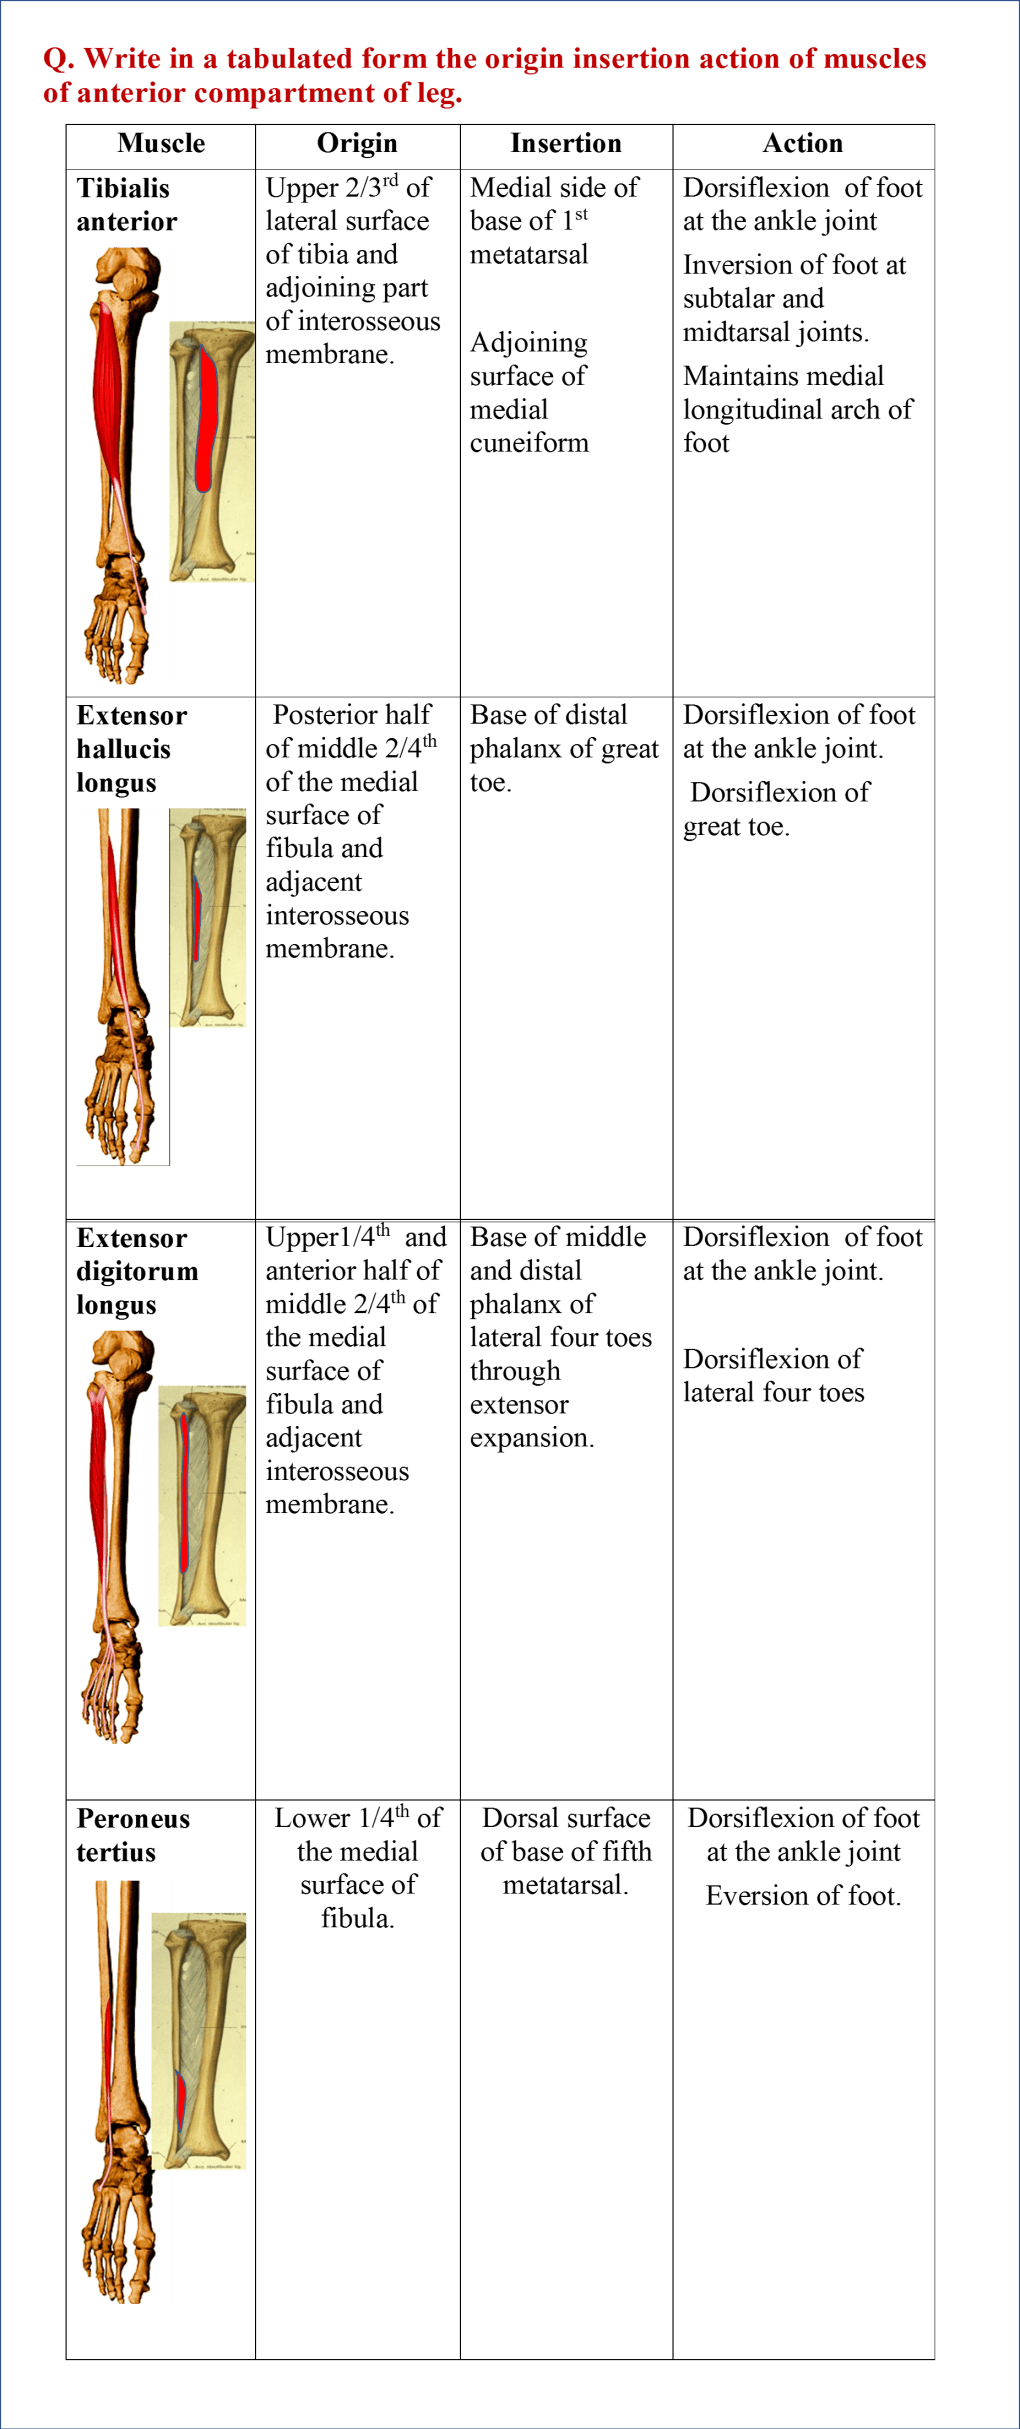 Muscles of Anterior/Extensor compartment of Leg